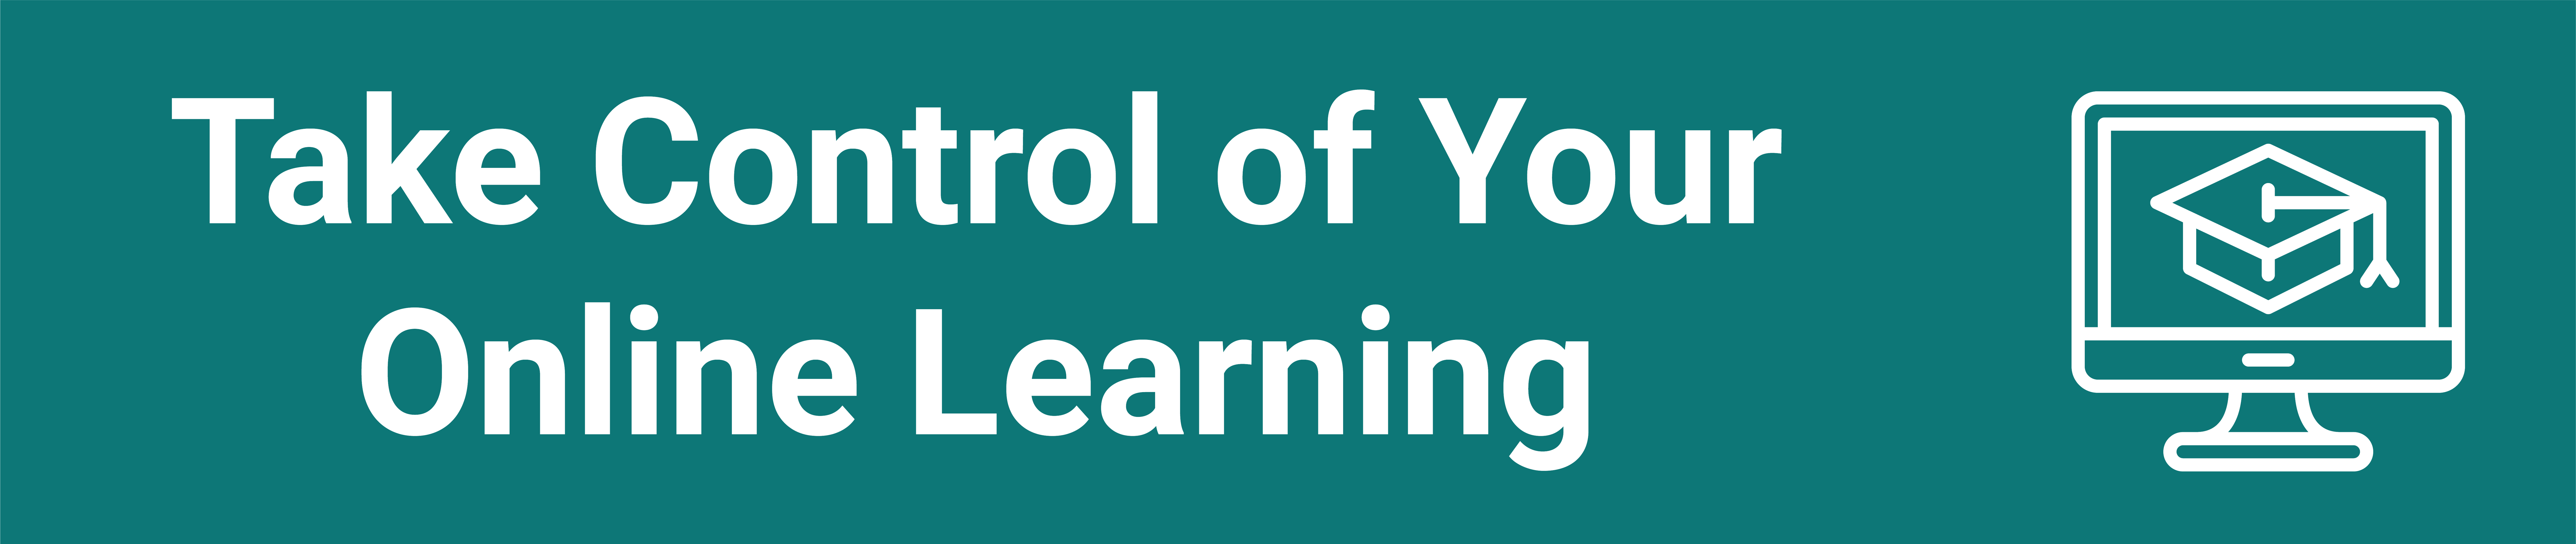 take control of your online learning